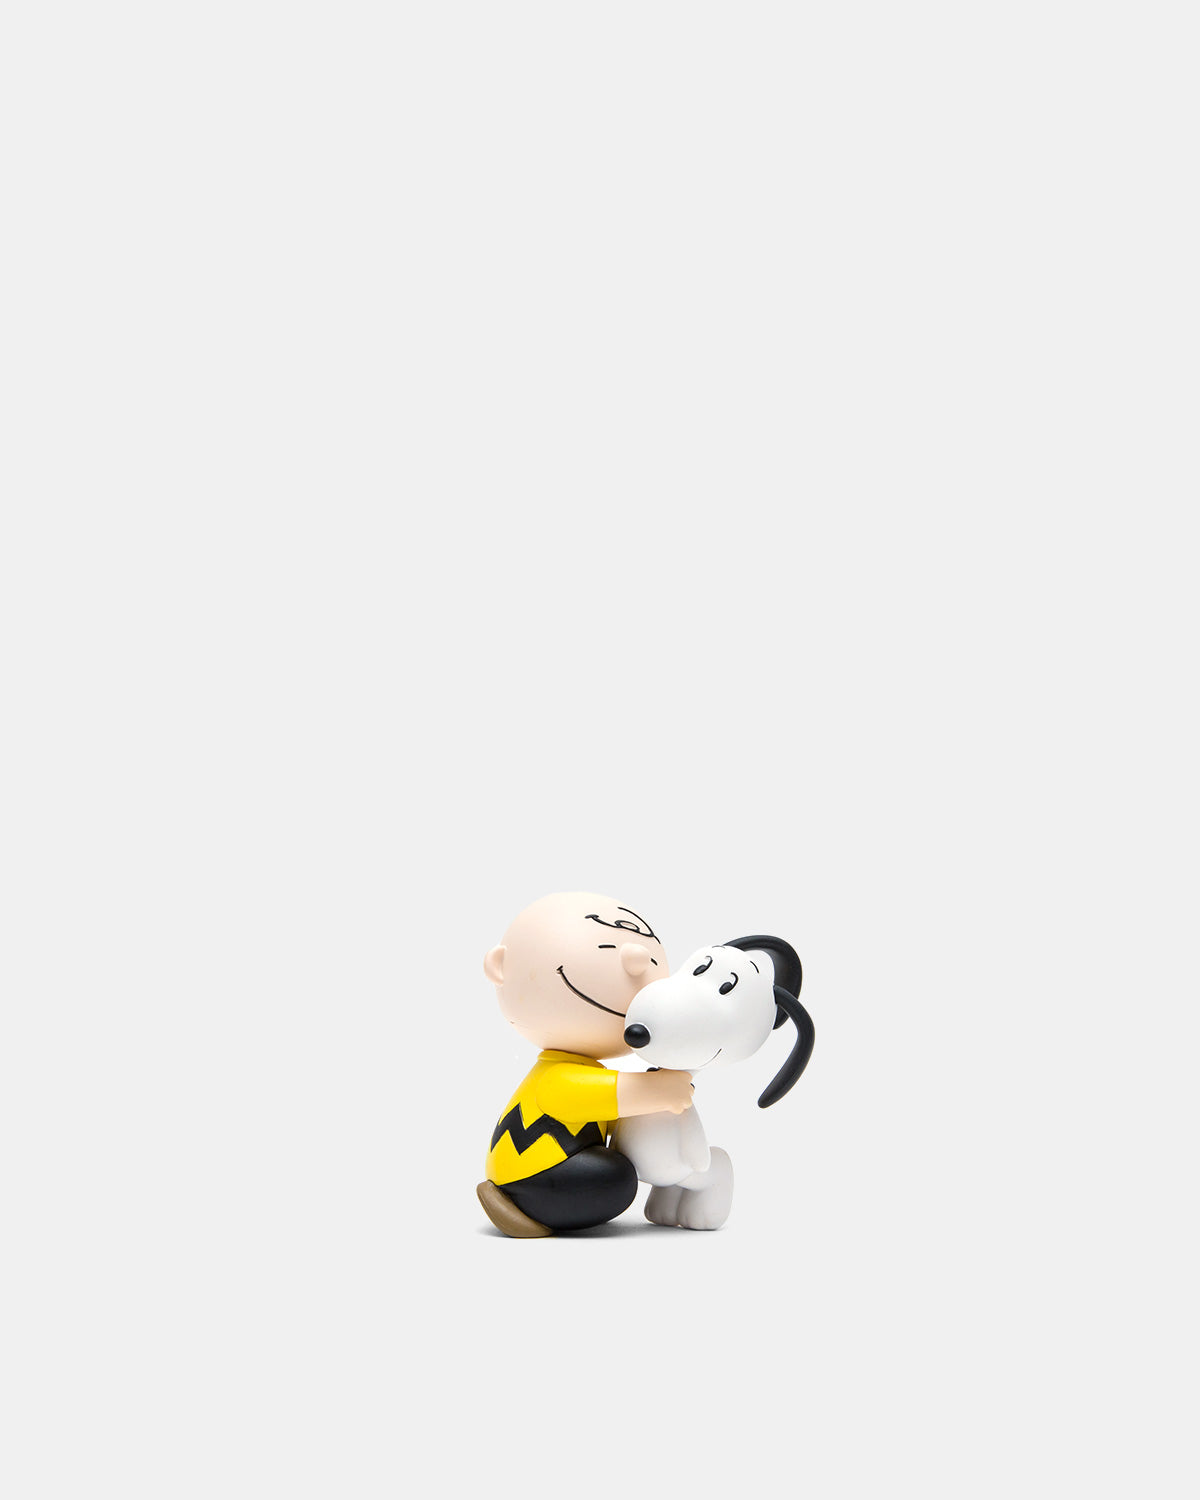 Medicom Toy - UDF Peanuts Series 8 Charlie Brown and Snoopy (Tan)